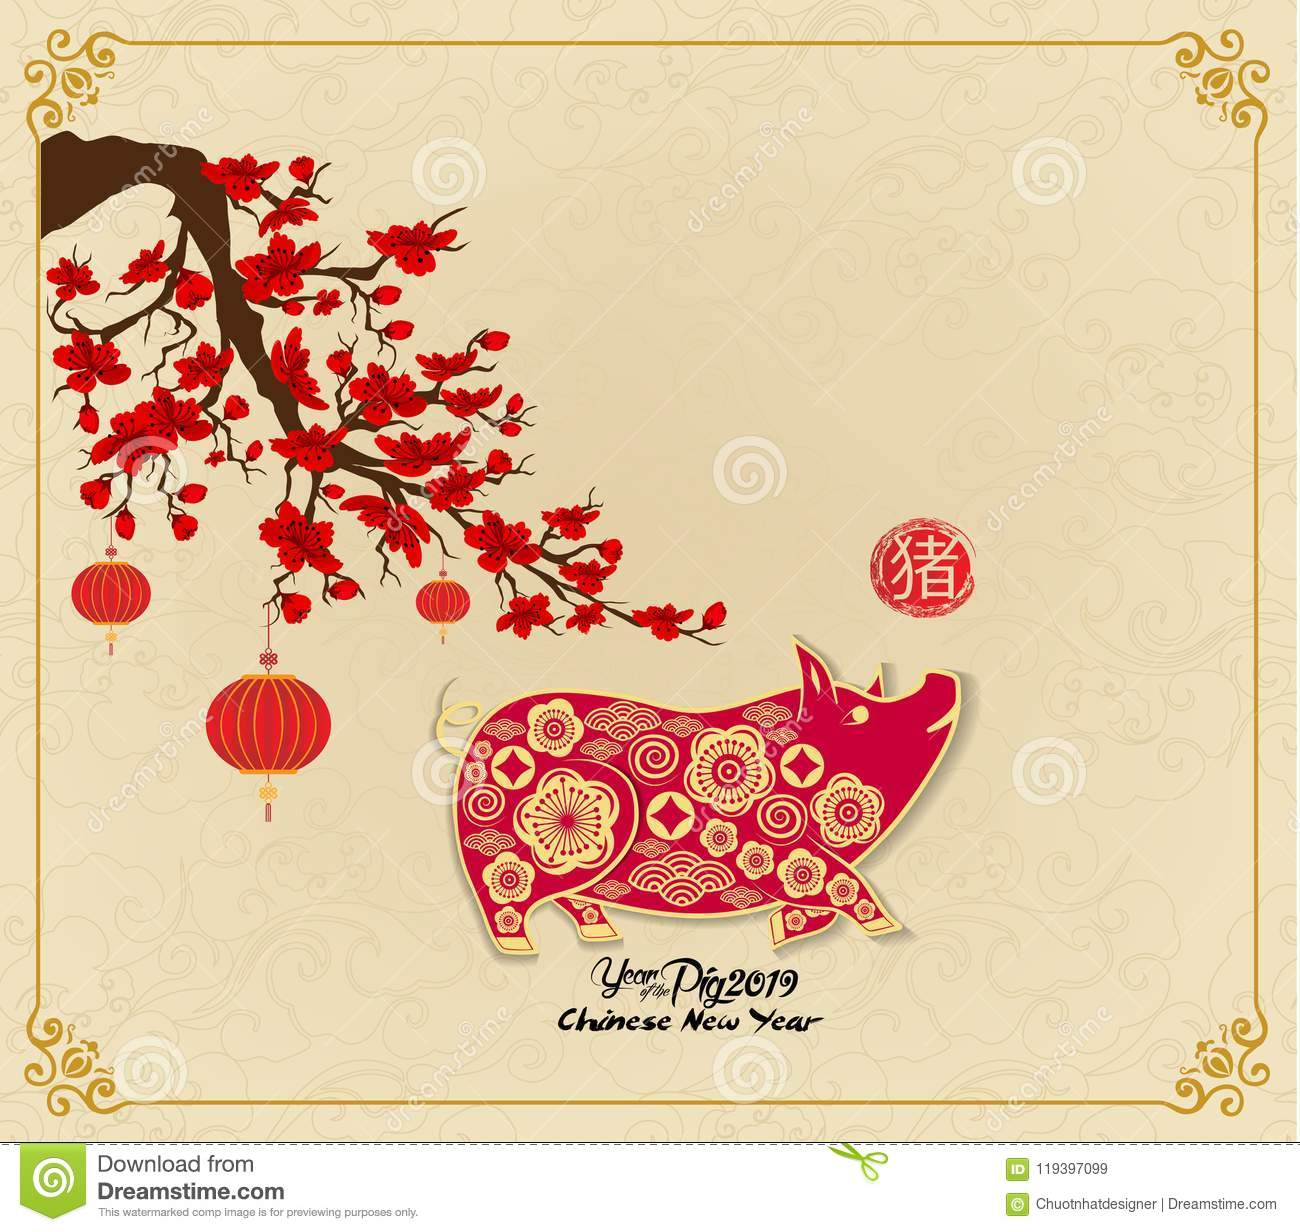 Happy chinese new year 2019 Zodiac sign with gold paper cut art and craft style on color Background hieroglyph: Pig